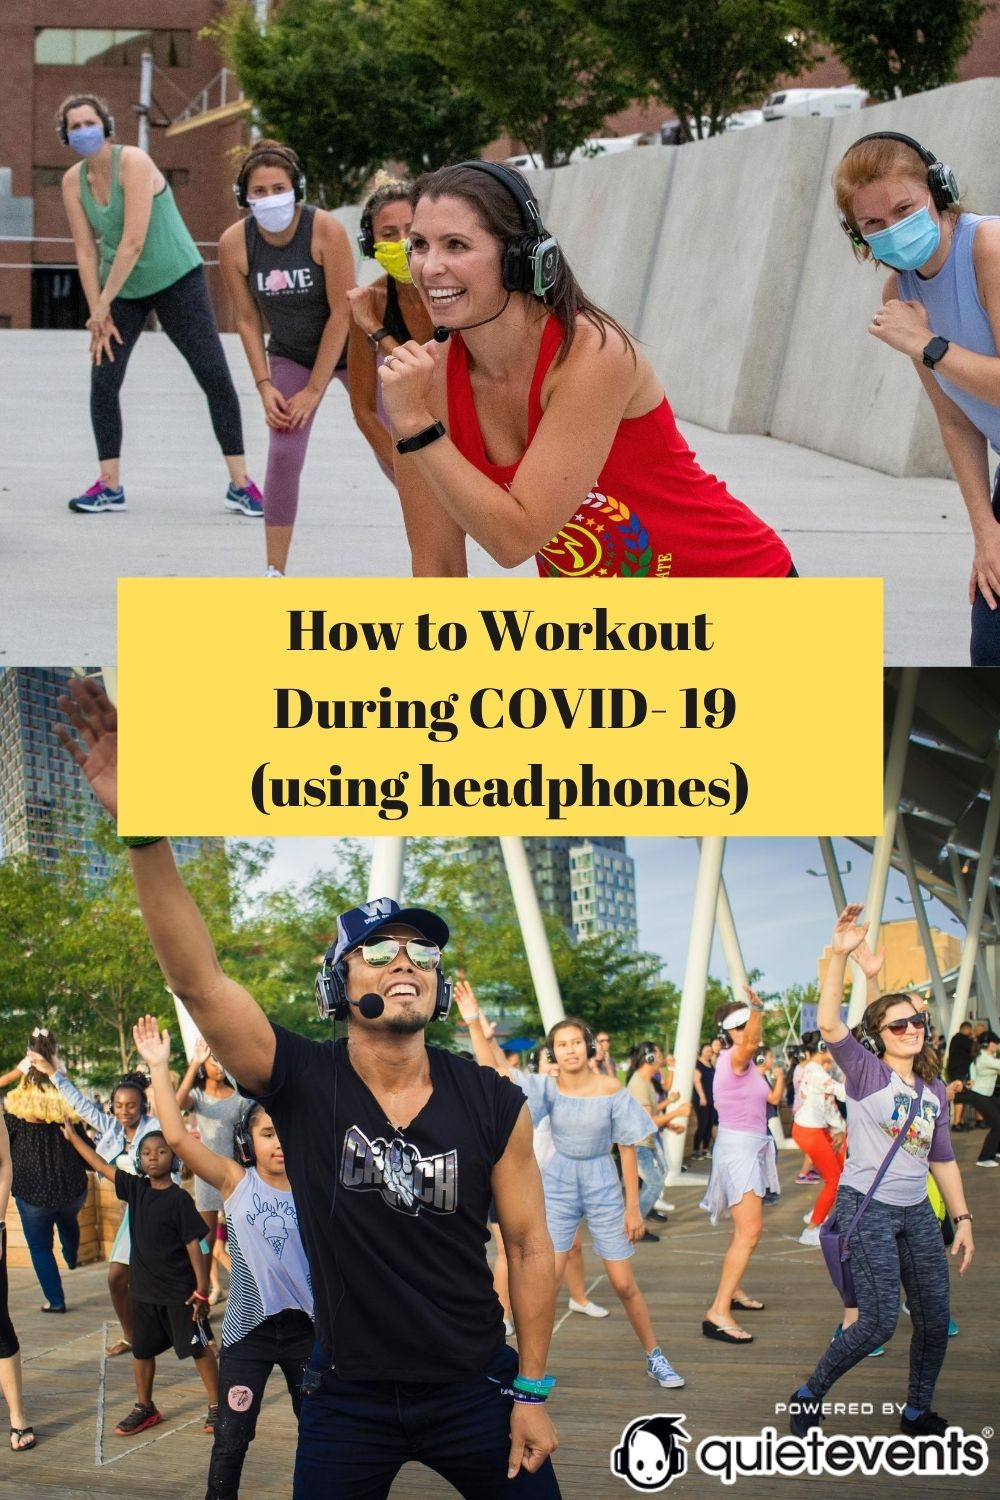 How to workout during COVID